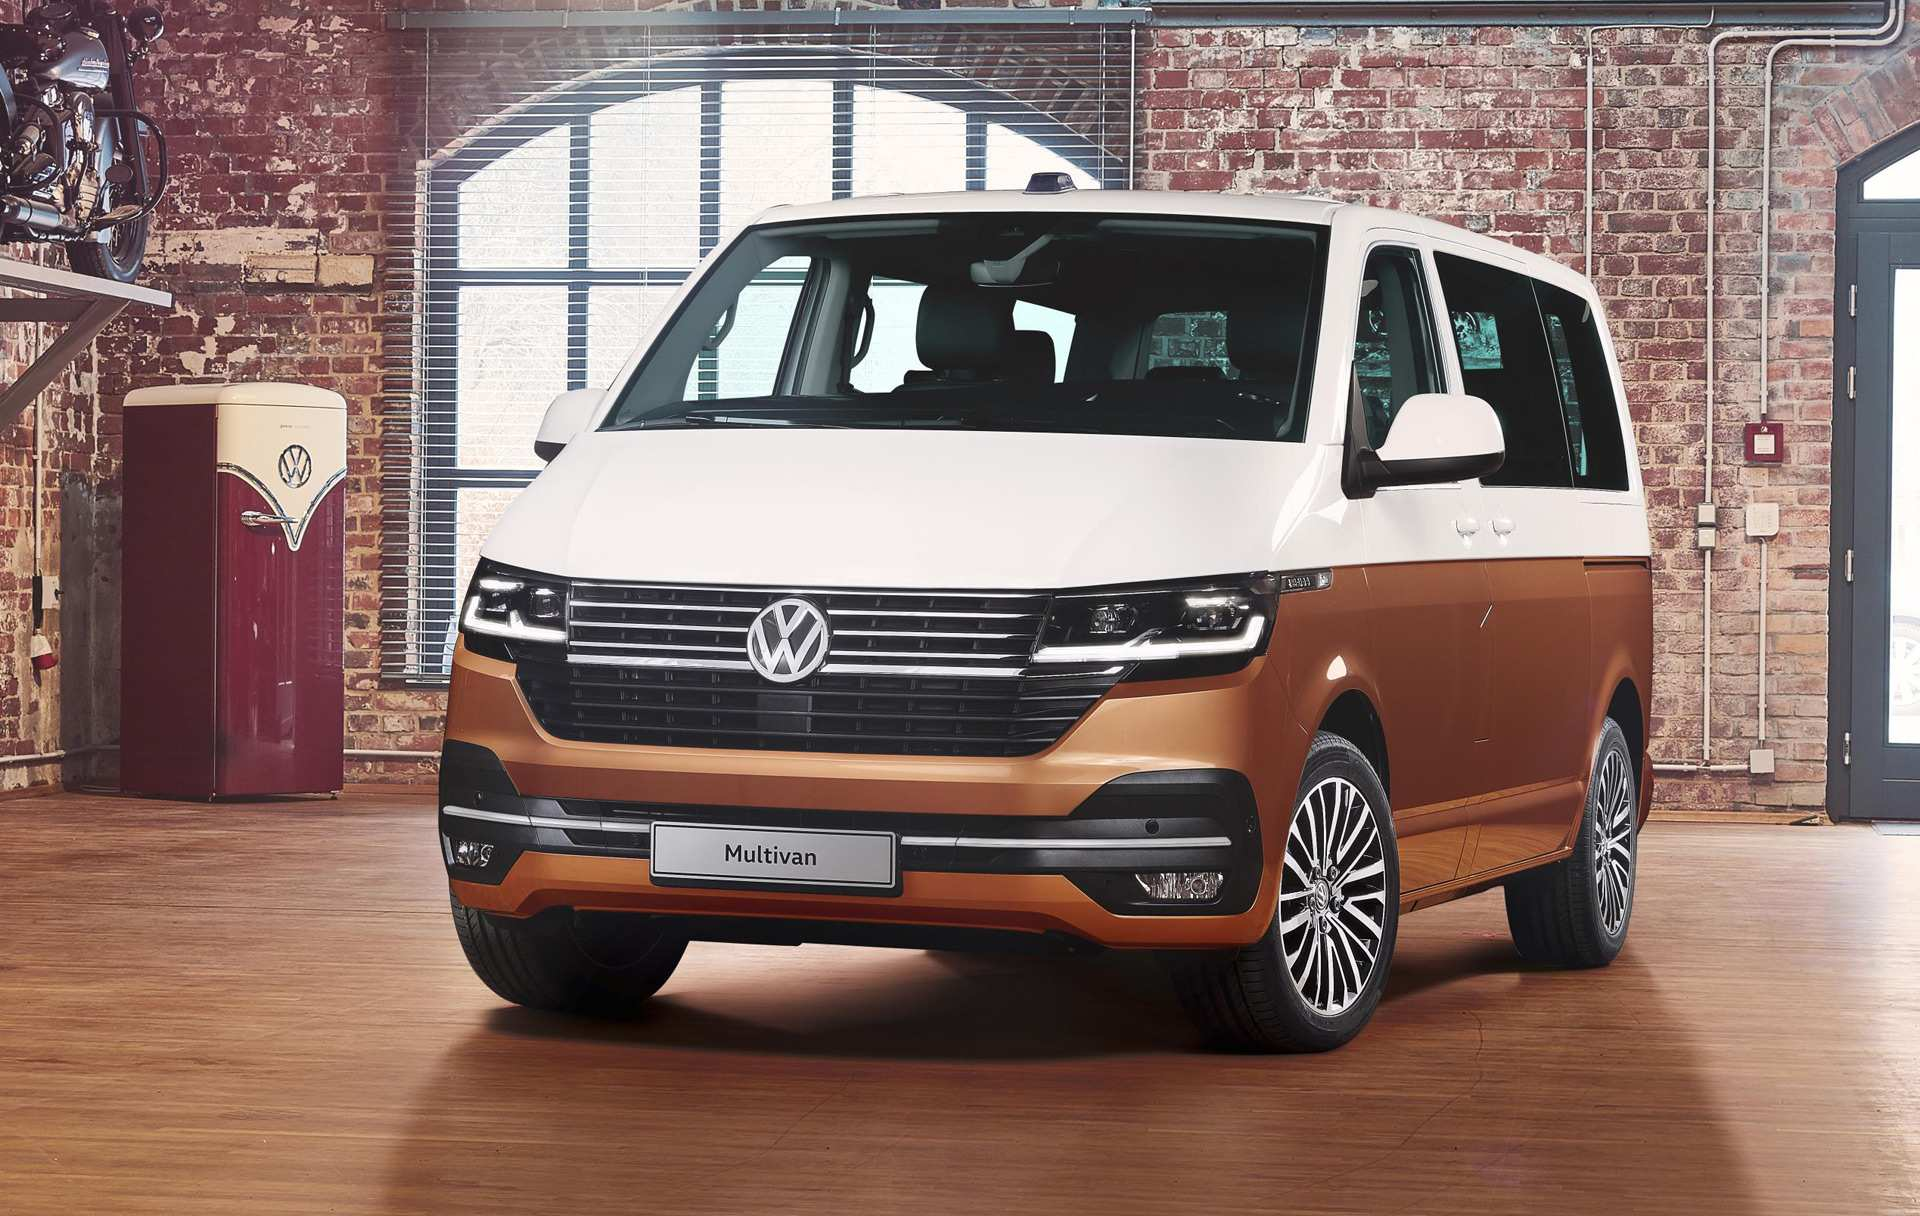 40 Best Review Yeni Volkswagen Caddy 2020 Exterior by Yeni Volkswagen Caddy 2020